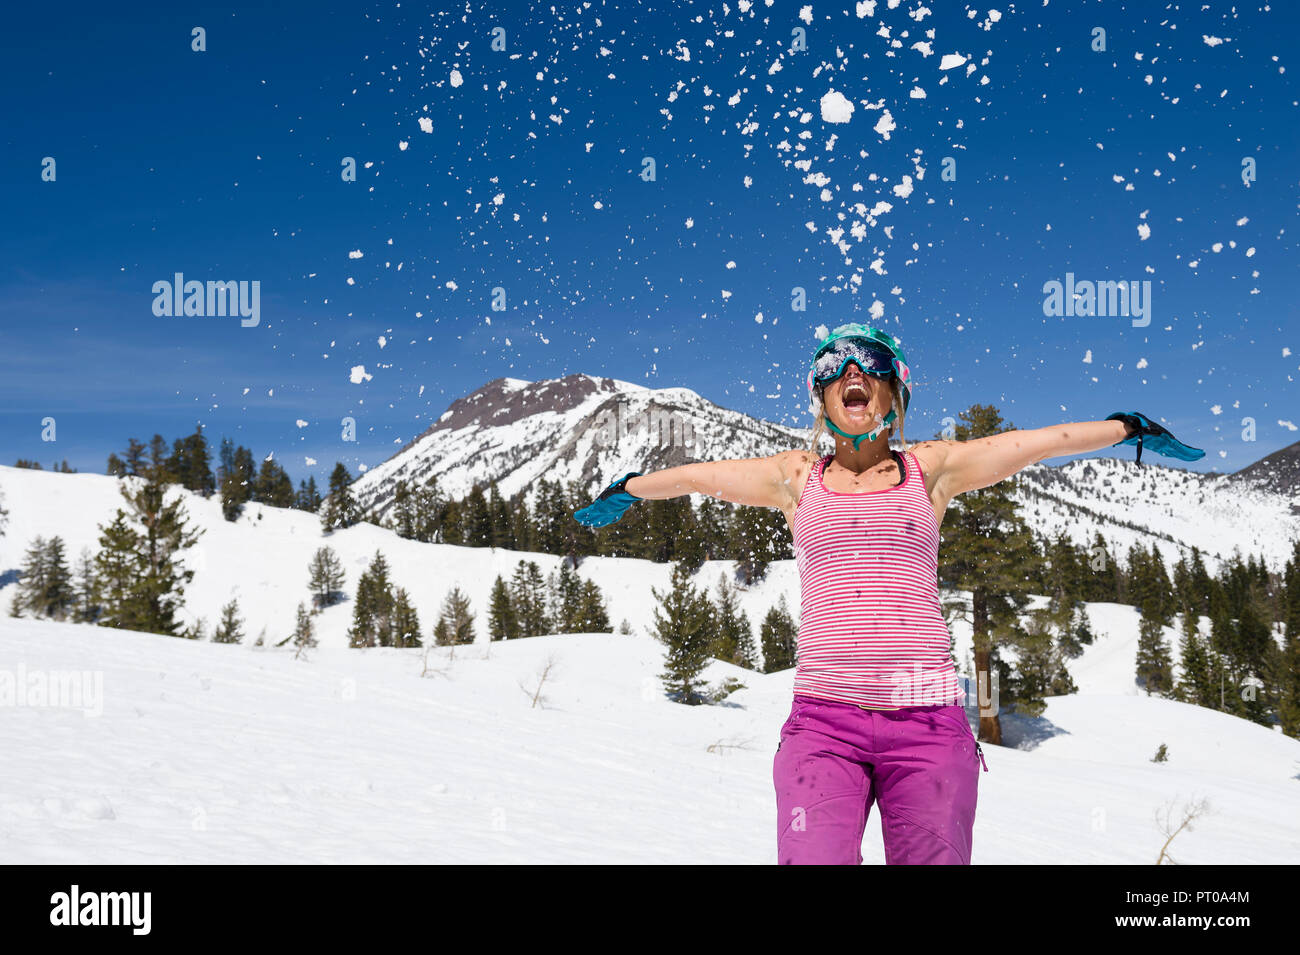 Young woman playing in snow during spring skiing at Mt. Rose Ski Tahoe, the closest Lake Tahoe ski area to Reno, Nevada. - Stock Image